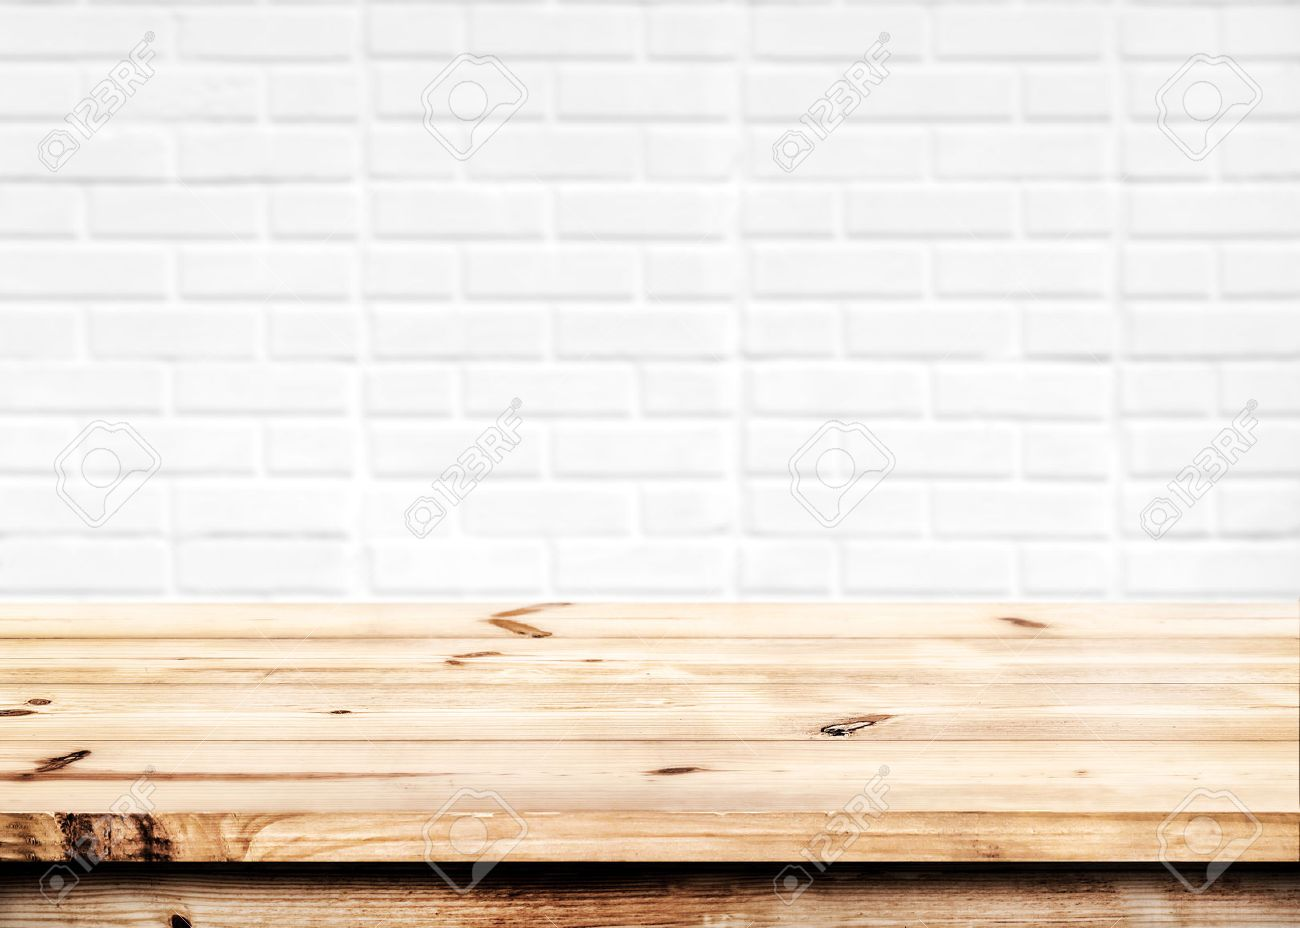 Plain wood table with hipster brick wall background stock photo - White Wall Empty Wooden Table For Product Placement Or Montage With Focus To The Table